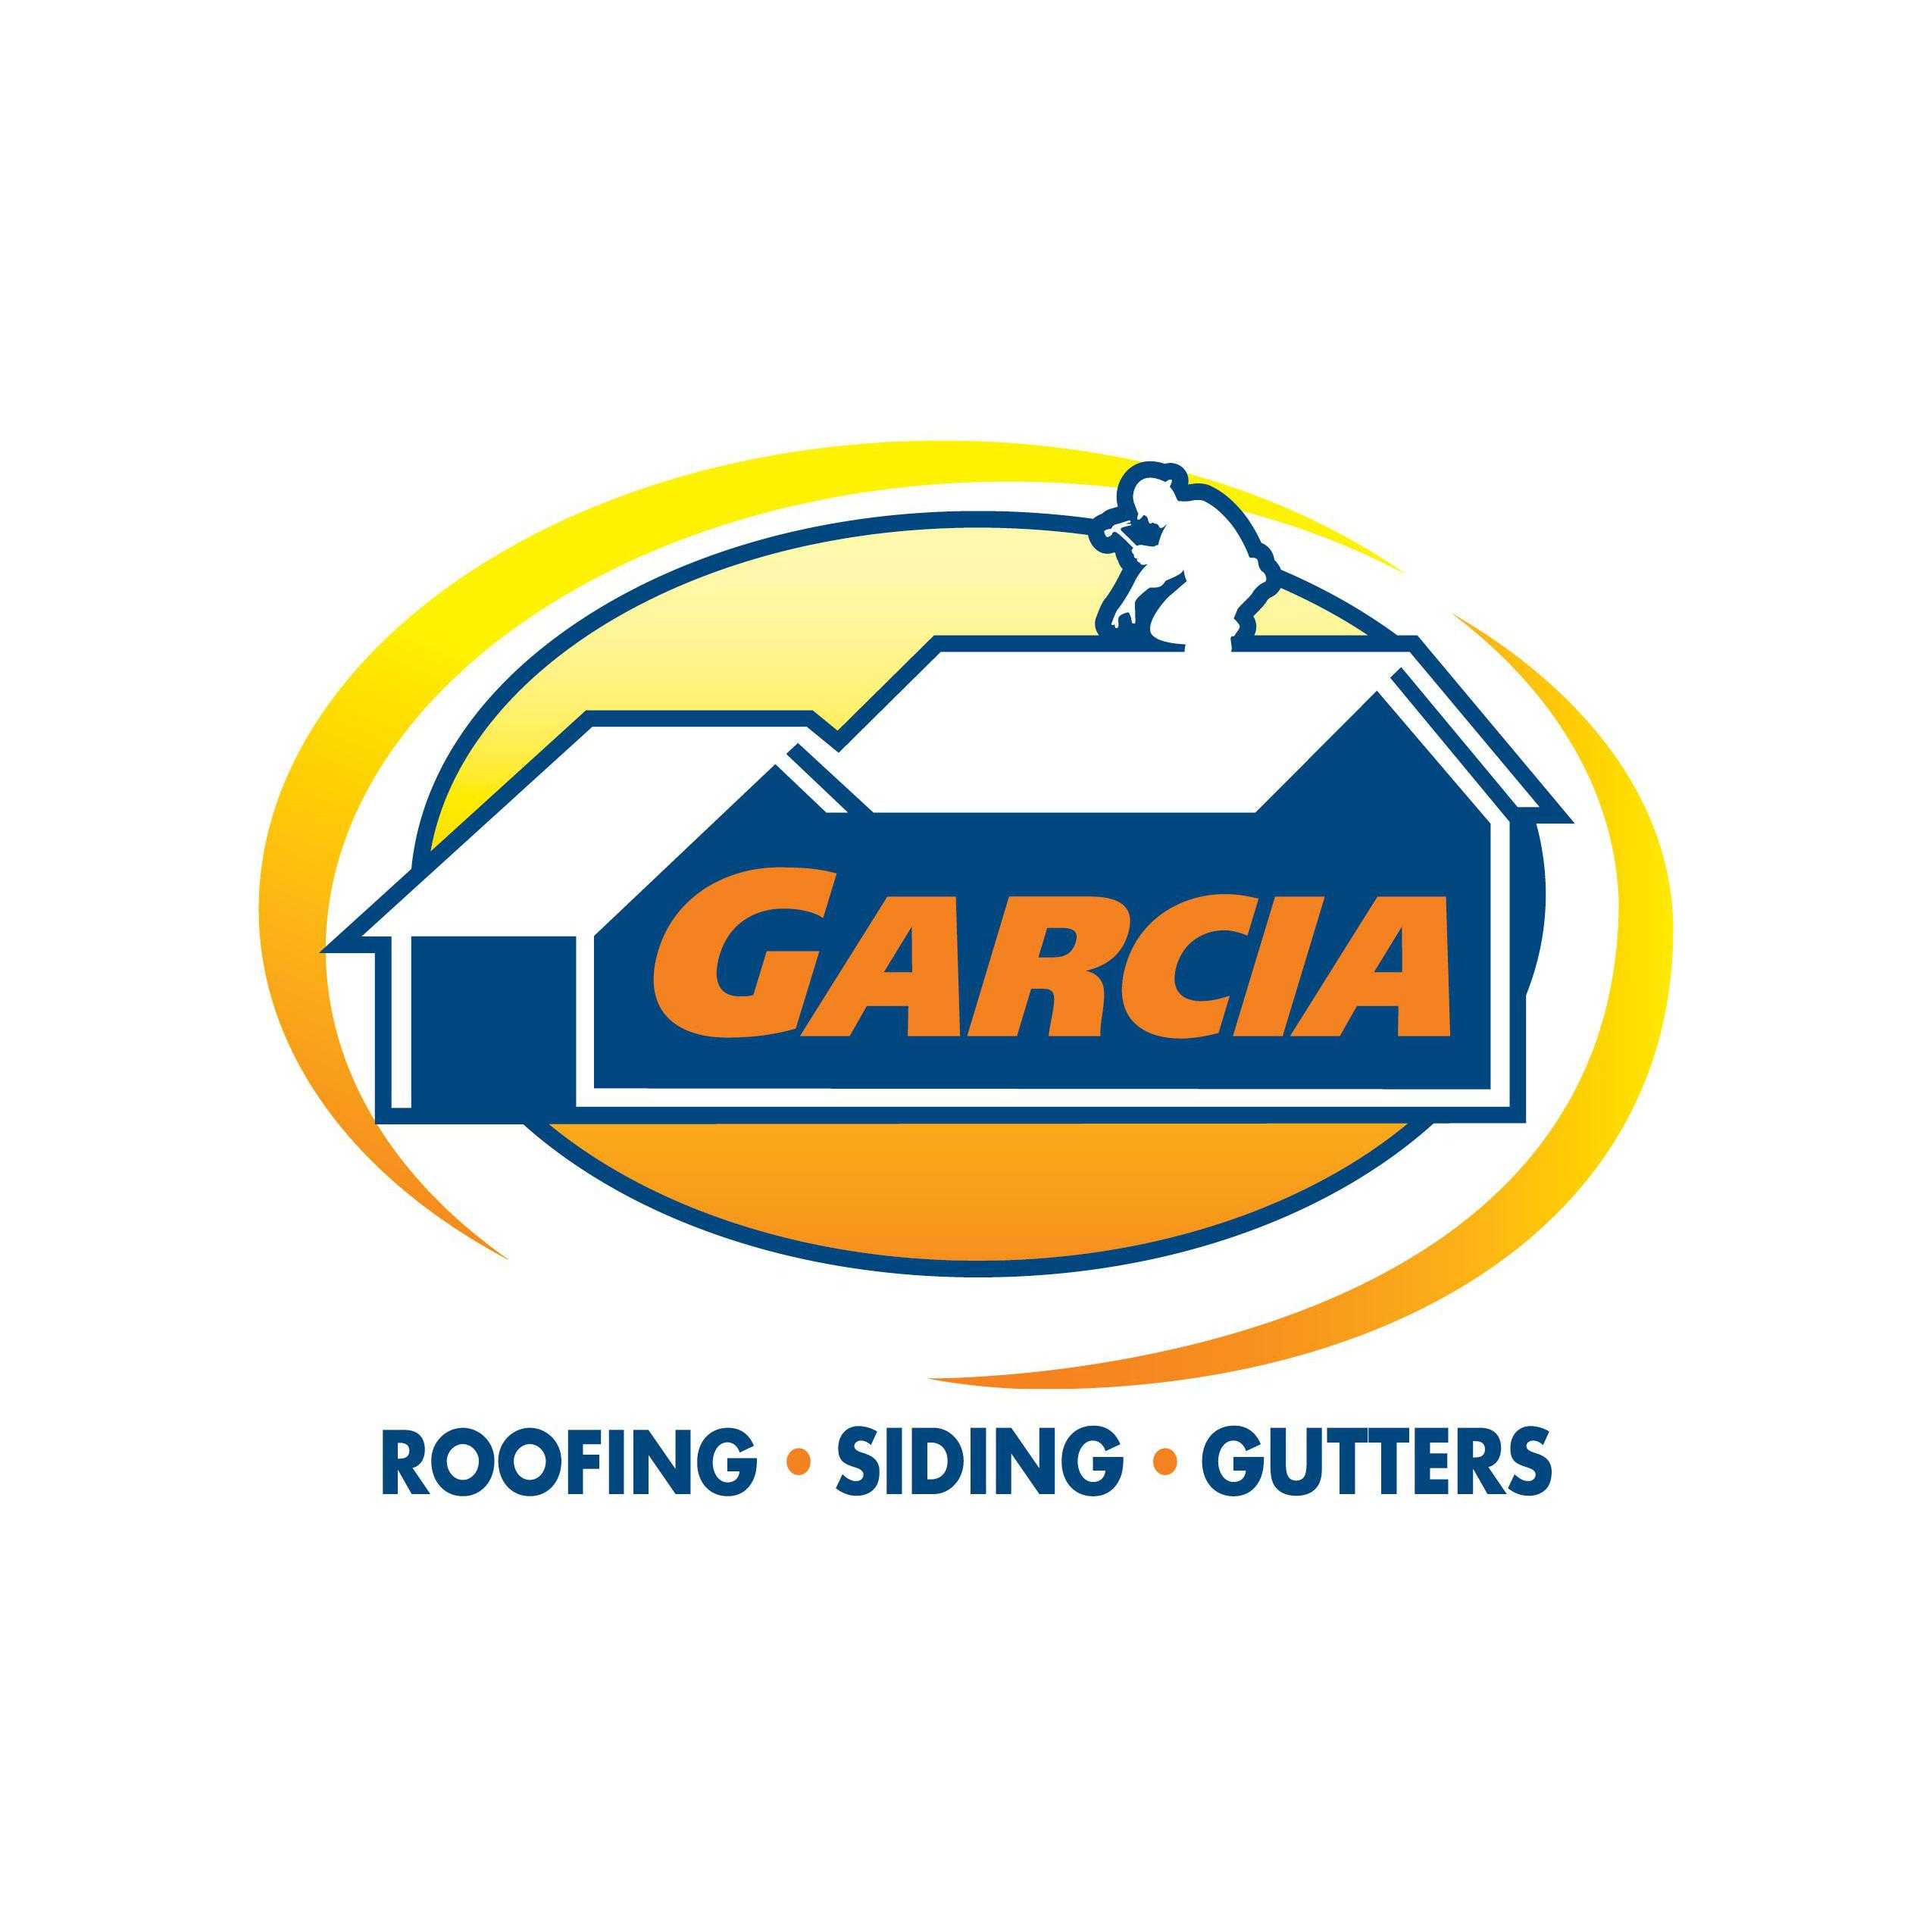 Garcia Roofing image 1